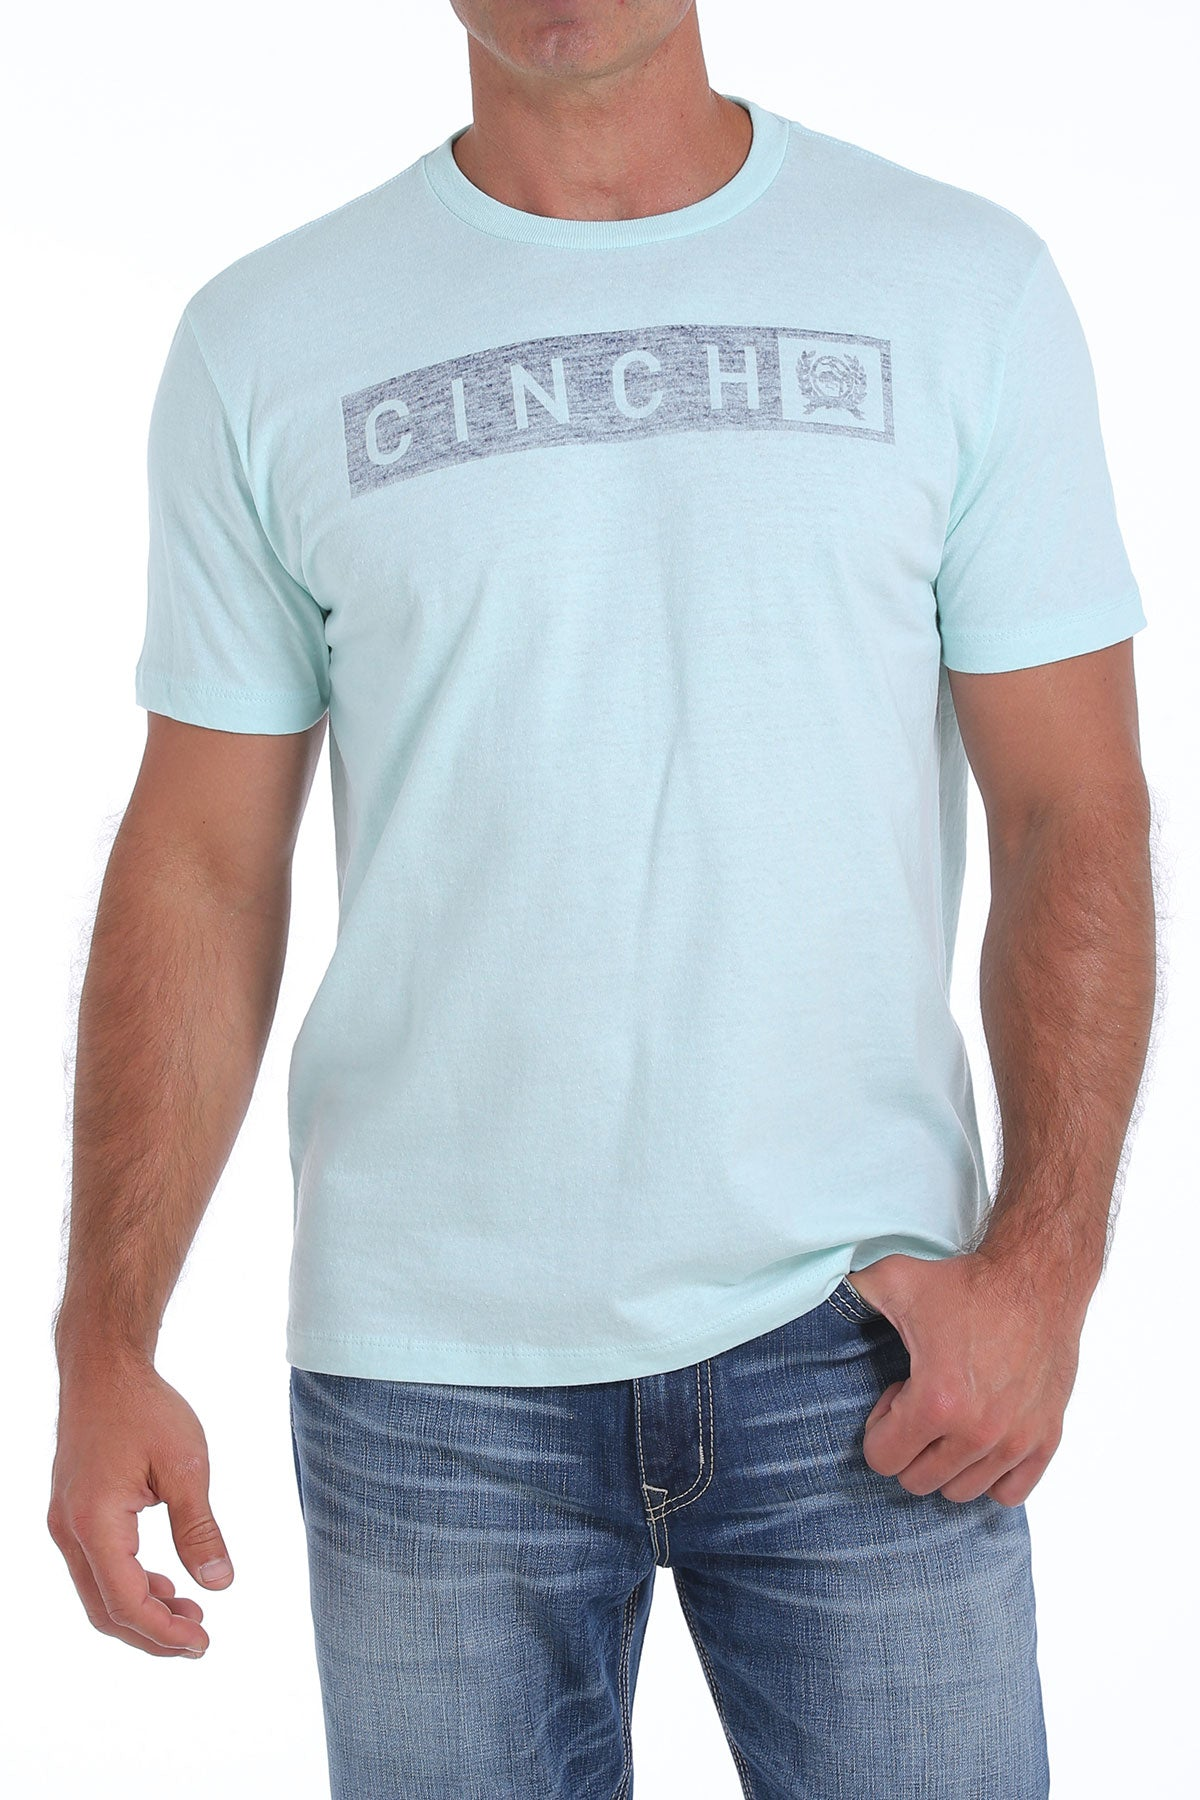 'Cinch' - MTT1690343 - SS Jersey Crew Neck T-shirt - Heather Lt. Blue